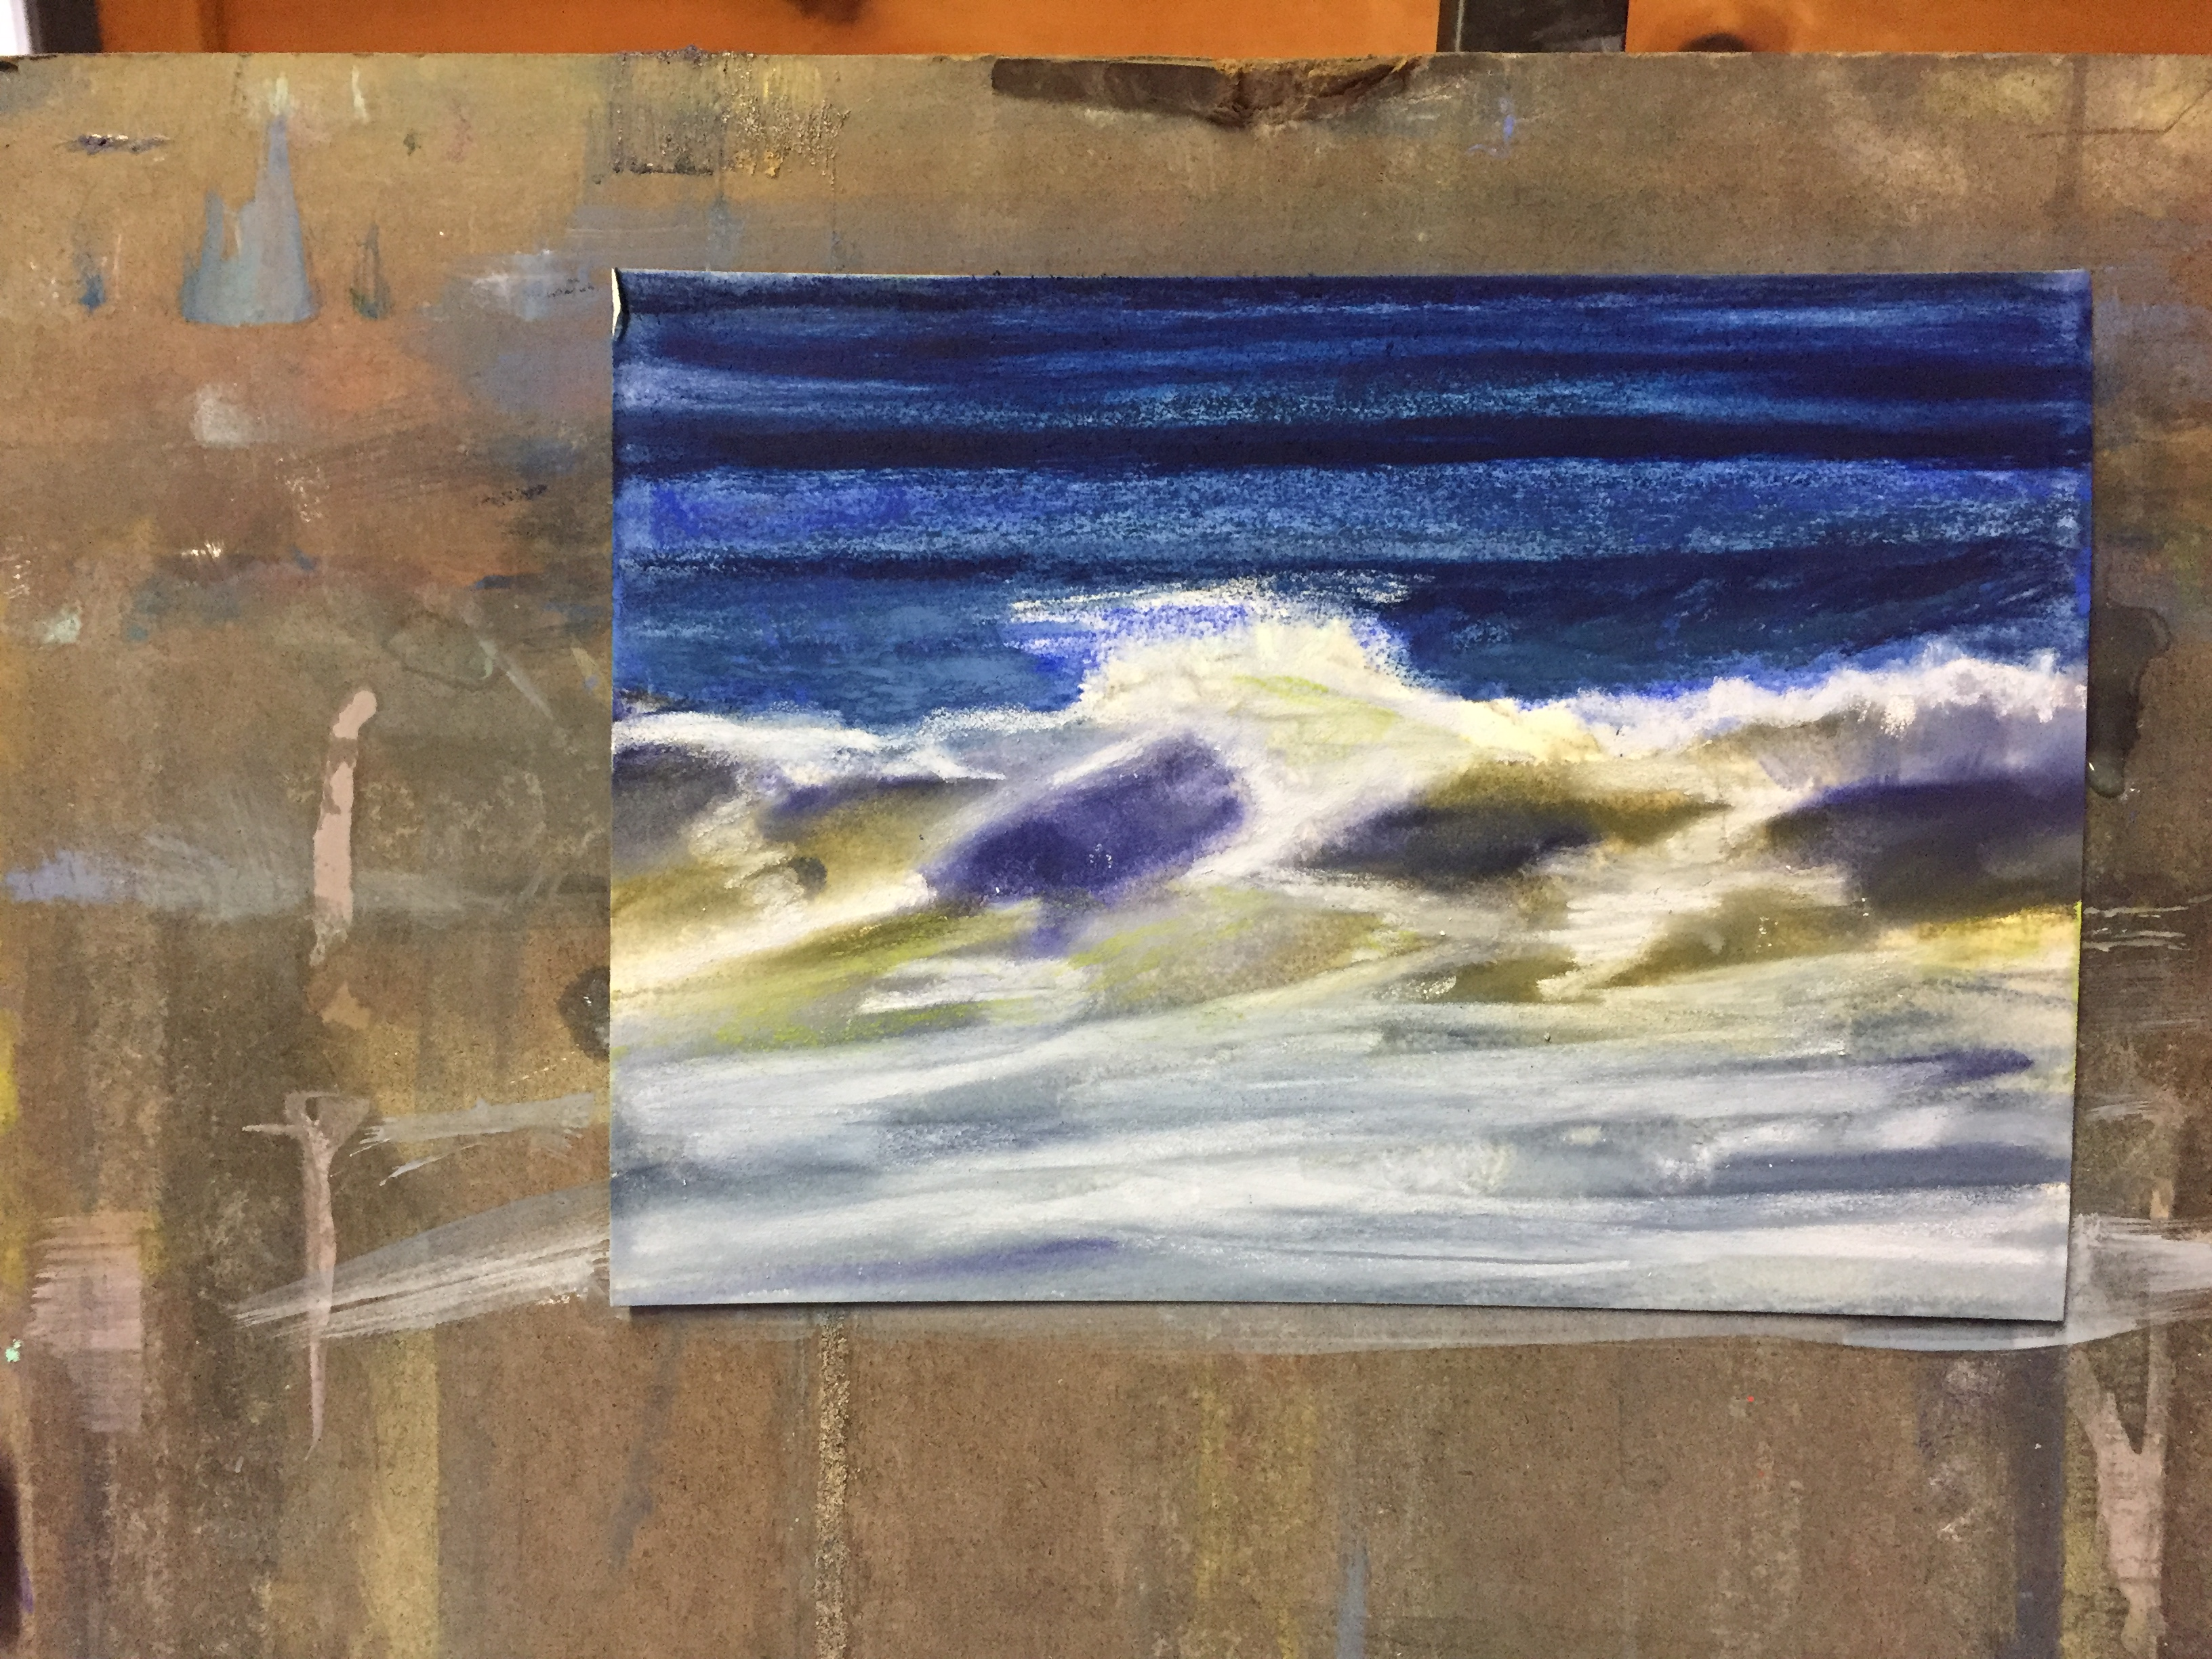 Underpainting for little wave